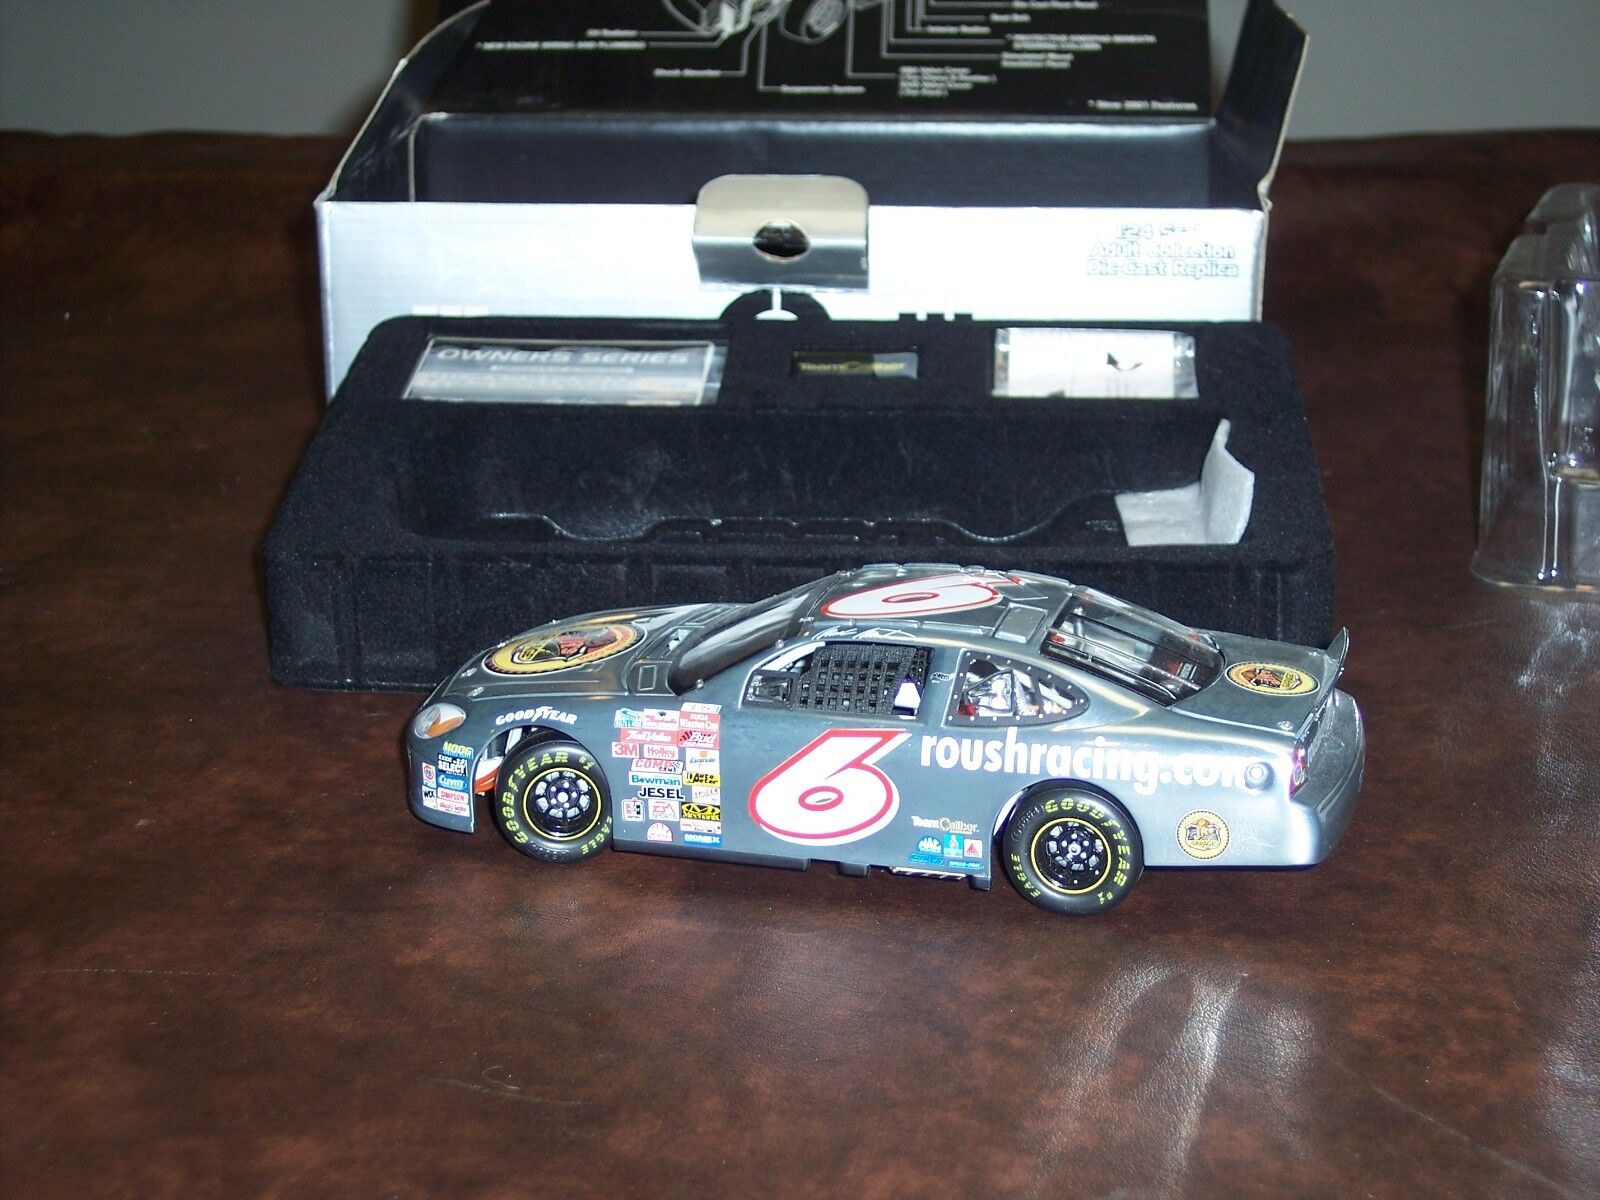 TEAM CALIBER- MARK MARTIN-  6 - JR's GARAGE- 2001 -1 24 SCALE- ZAMAC- NEW -(HTF)